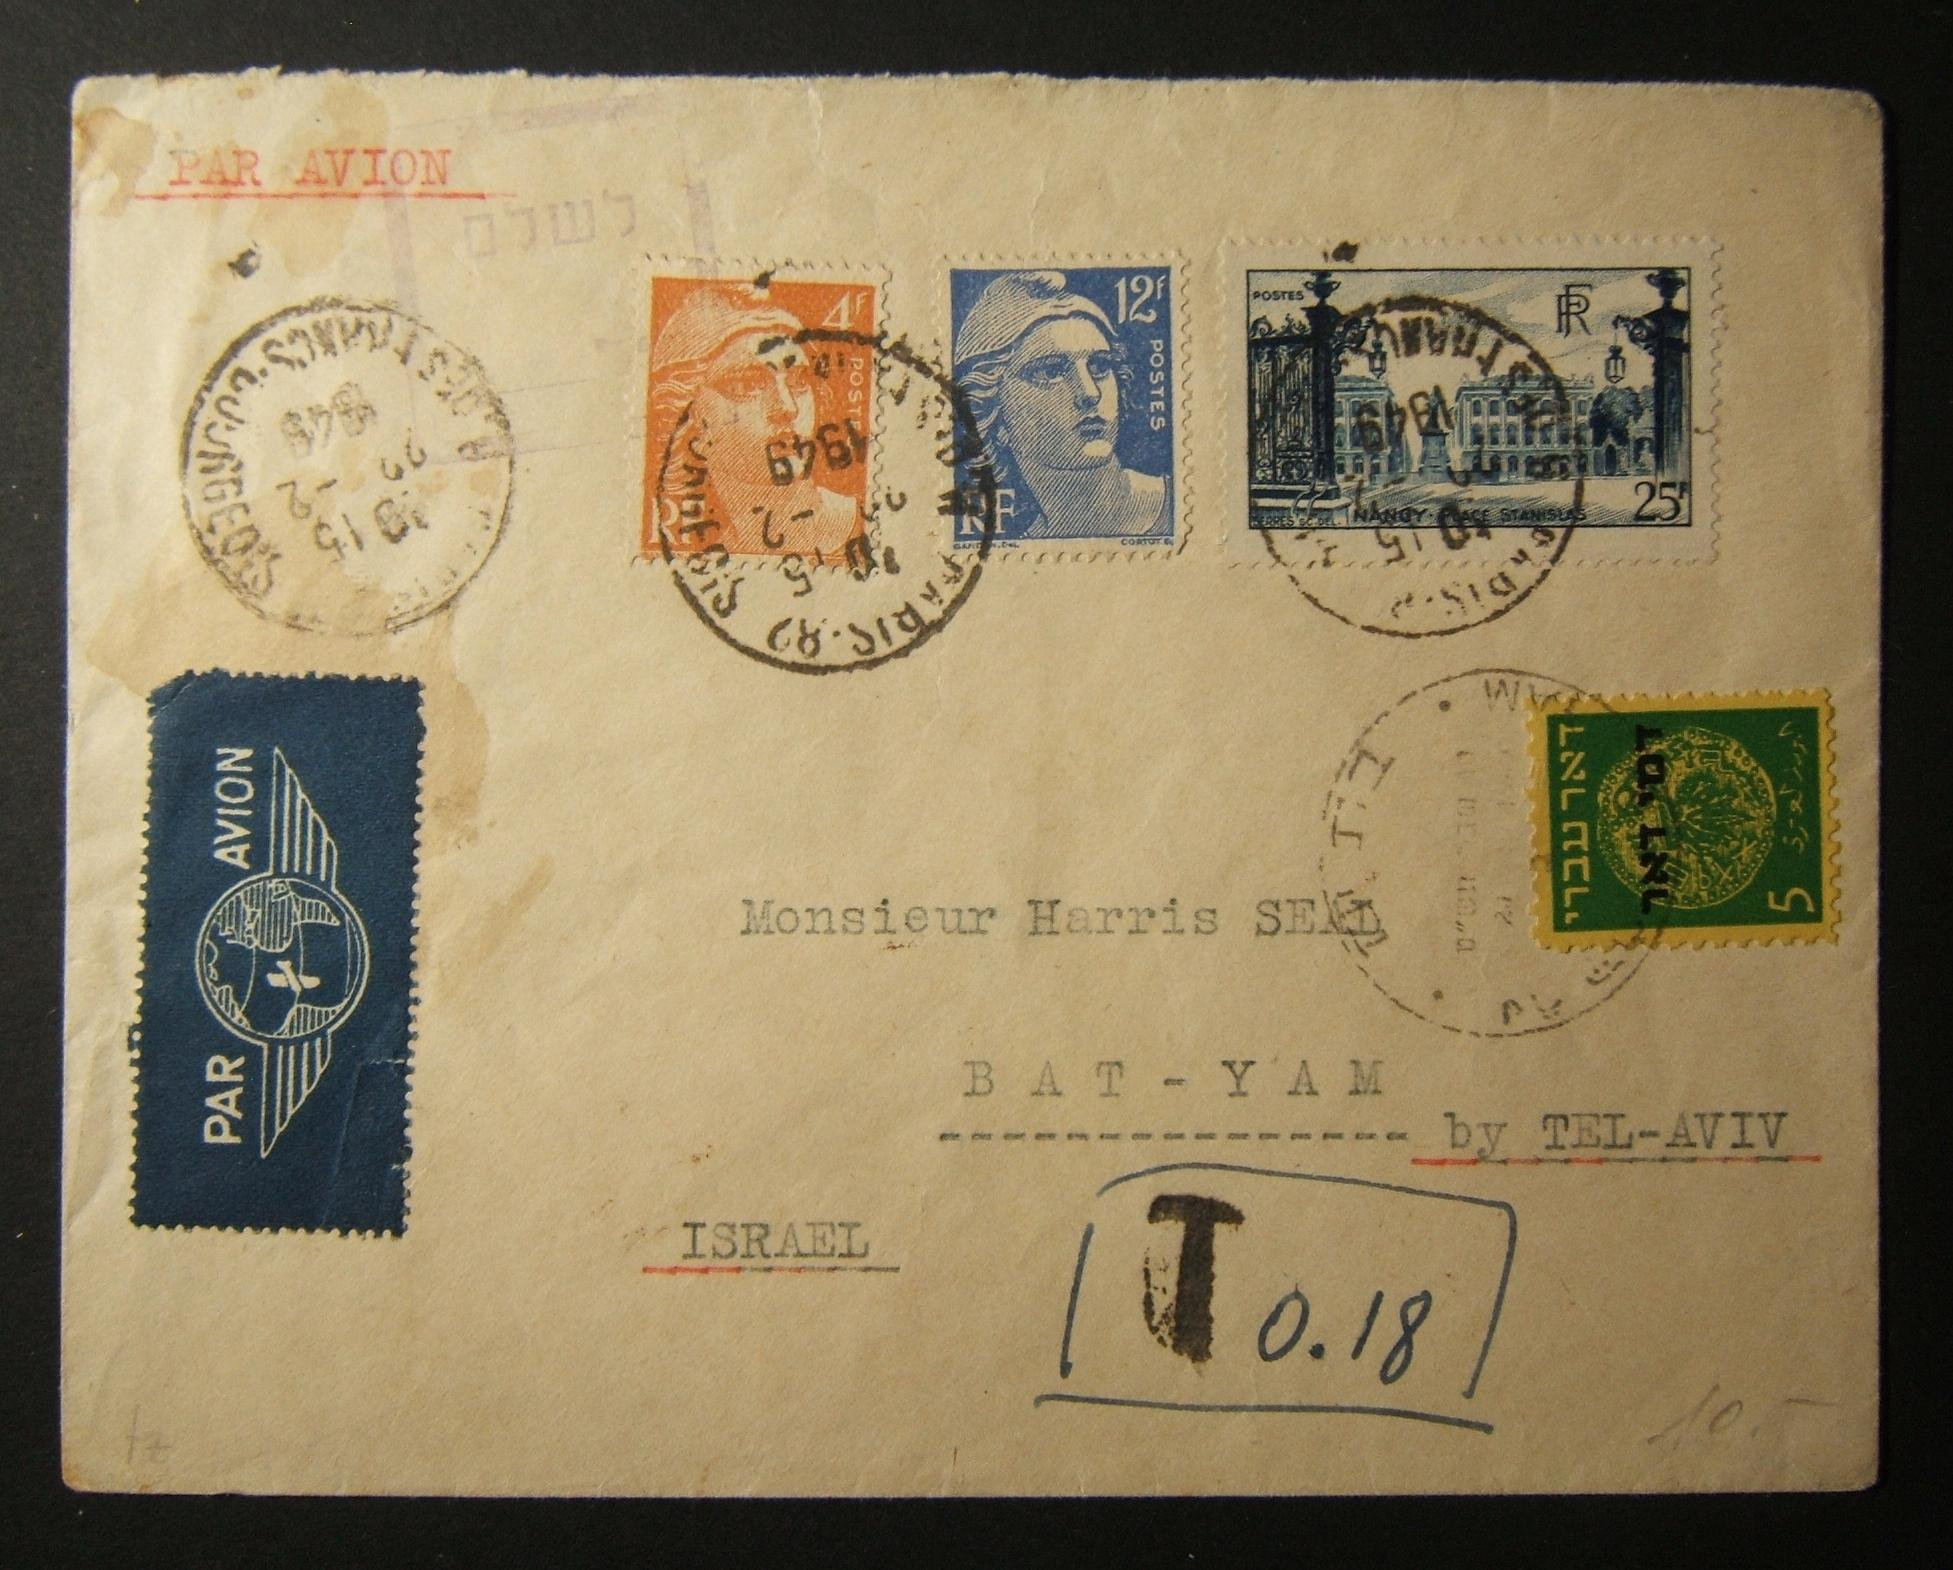 1949 incoming French taxed mail: 22-2-1949 airmail cover ex PARIS to BAT YAM, underfranked at 41F and taxed 5Pr in Israel using 5pr BaPD2 (partially missing Arabic leg.) frank tied